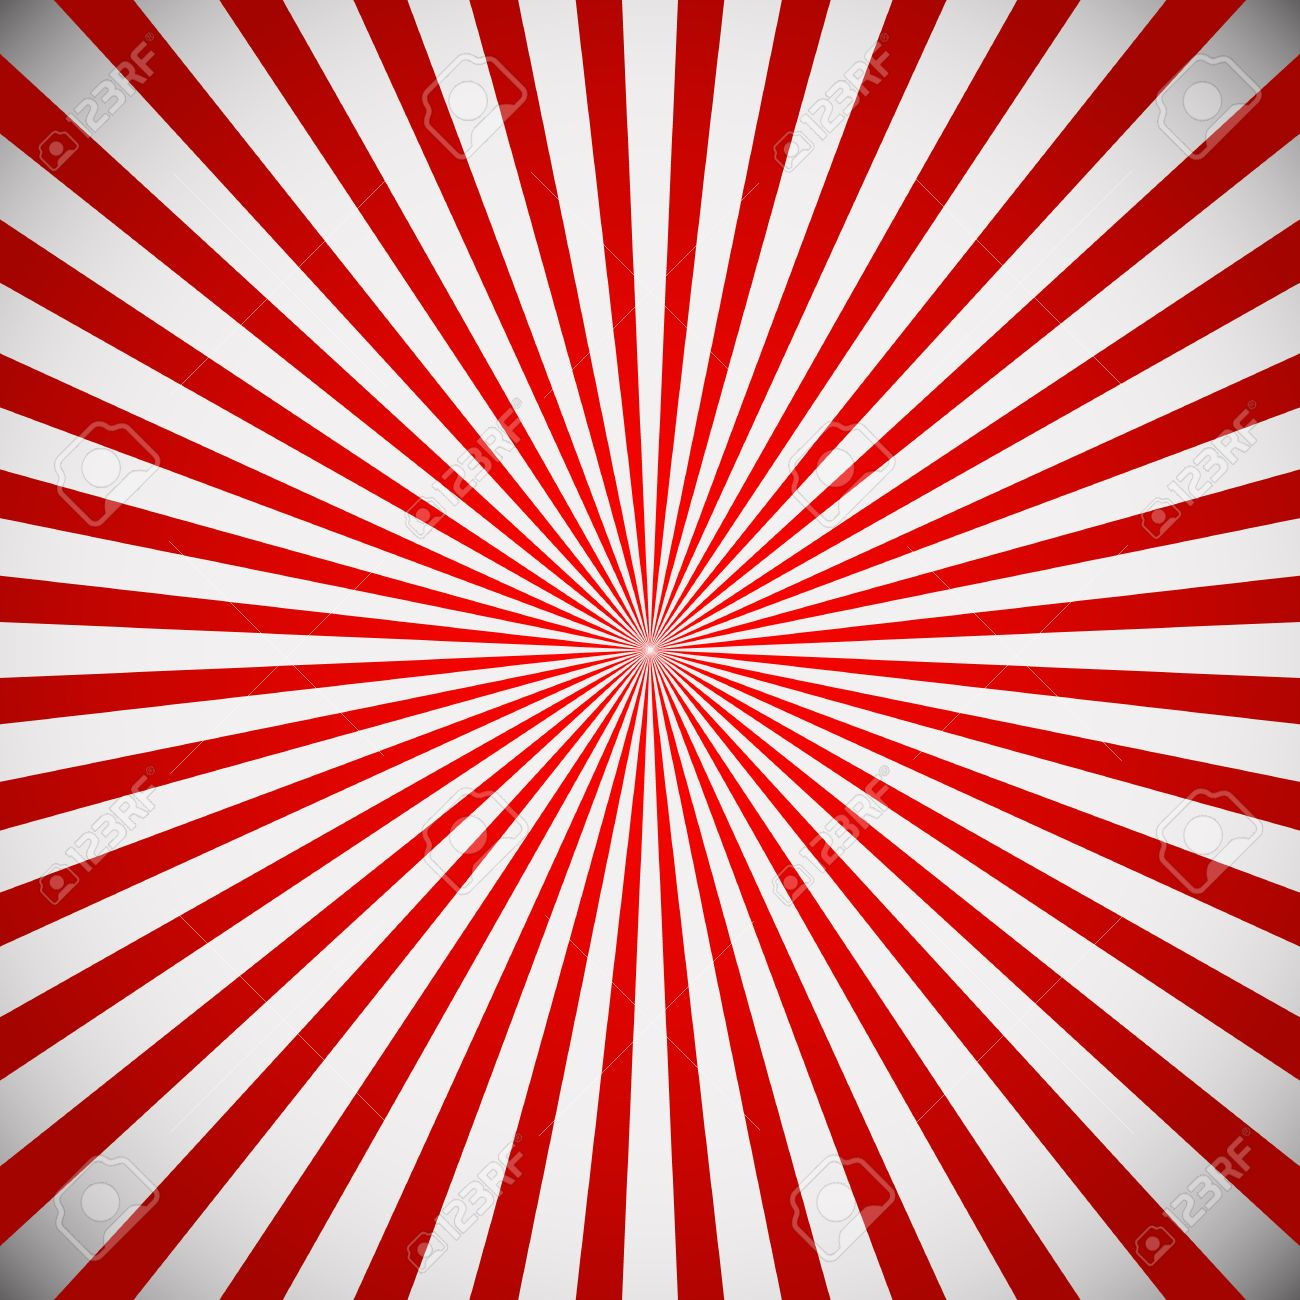 Background image center - Vector Illustration Of A Red Starburst Sunbrust Background Radiating Lines From Center Stock Vector